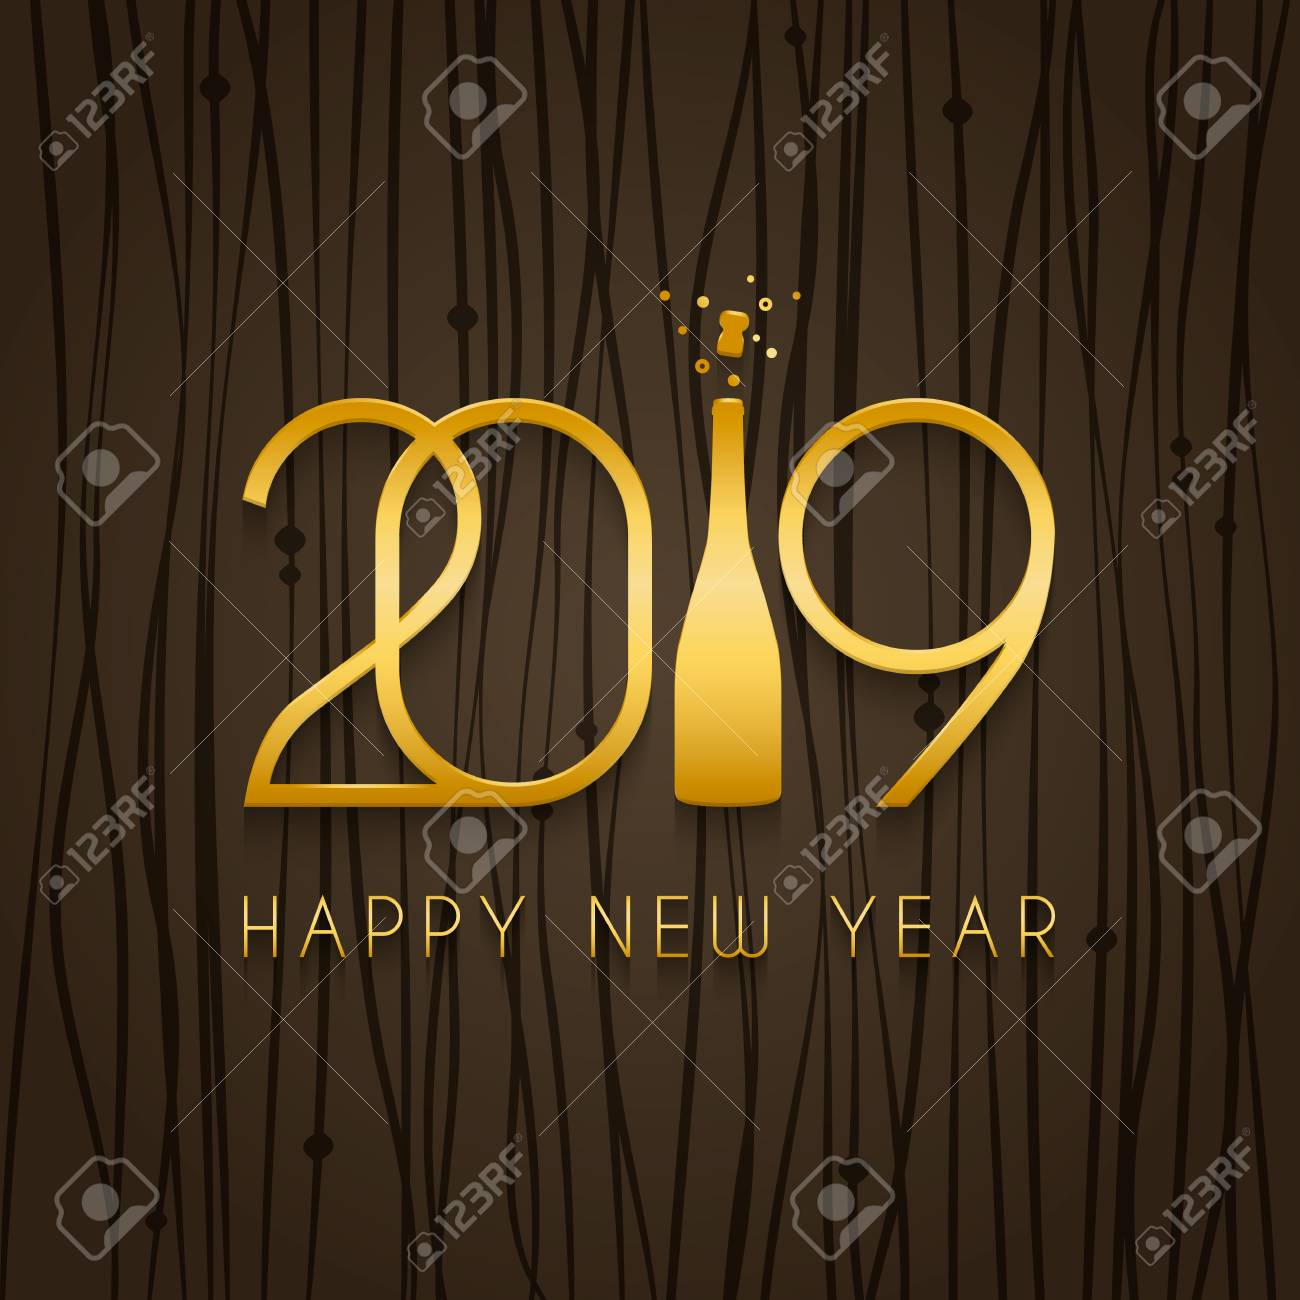 2019 happy new year design template for holiday greeting card and invitation gold numbers